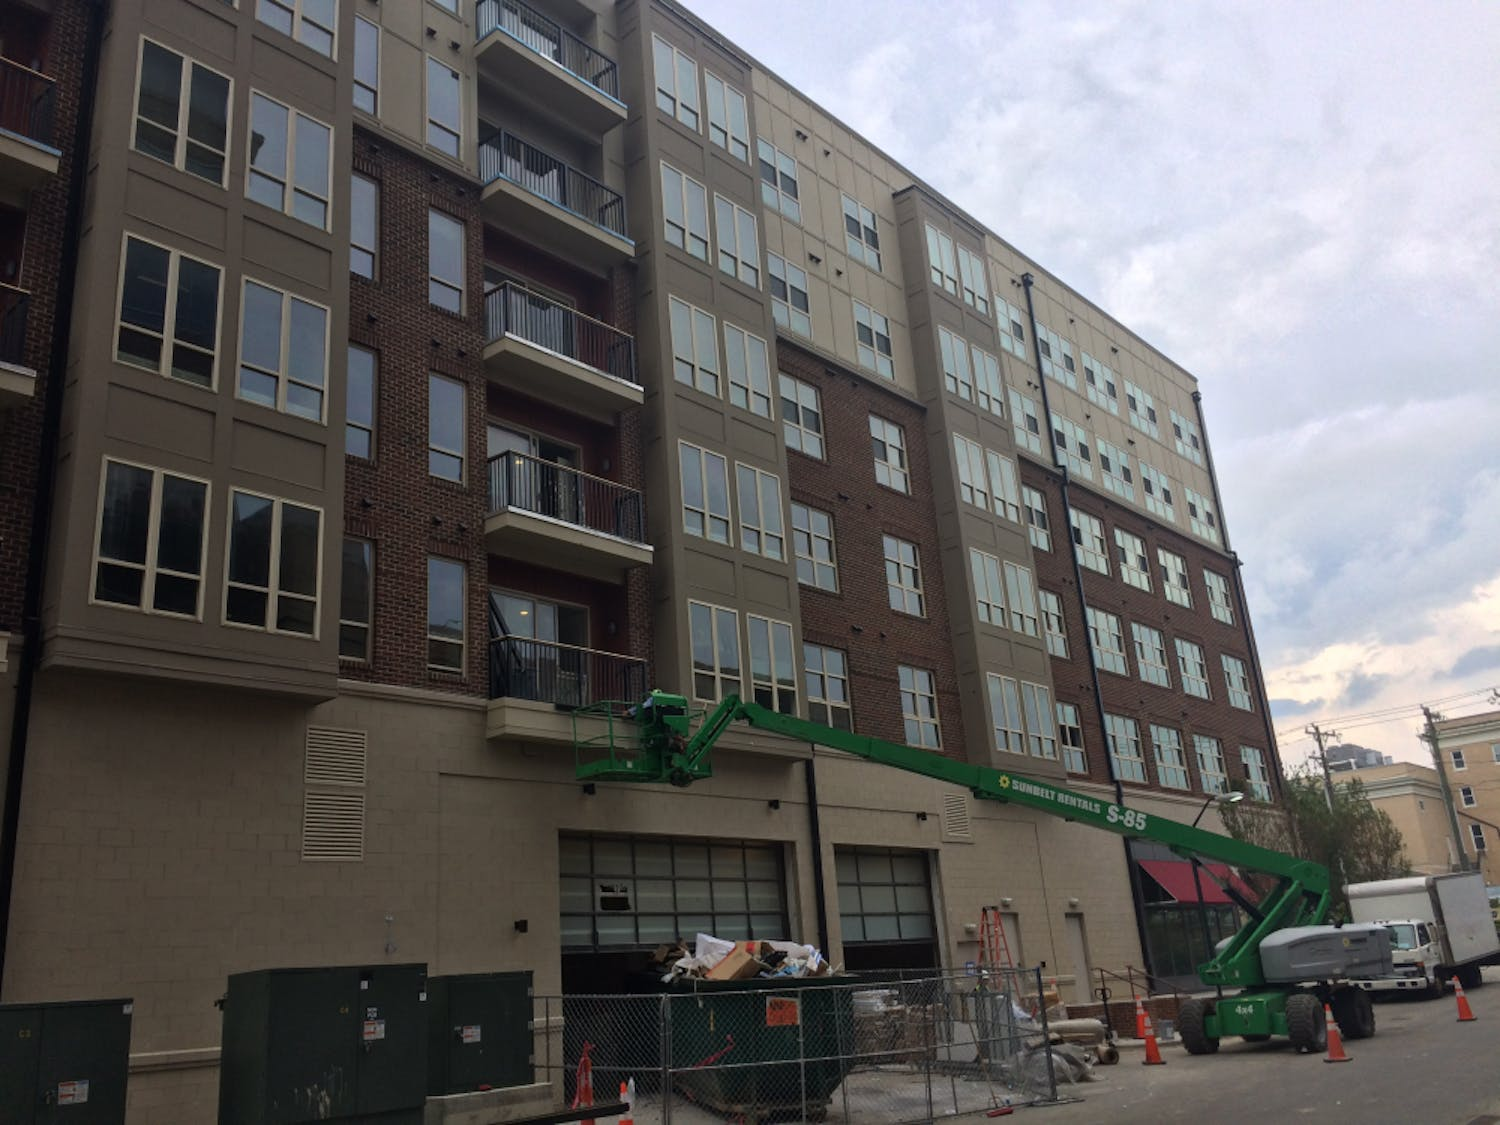 A man fell in an unfinished portion of the Carolina Square development, which includes the recently-opened Target. The image does not depict the exact location of the fall.